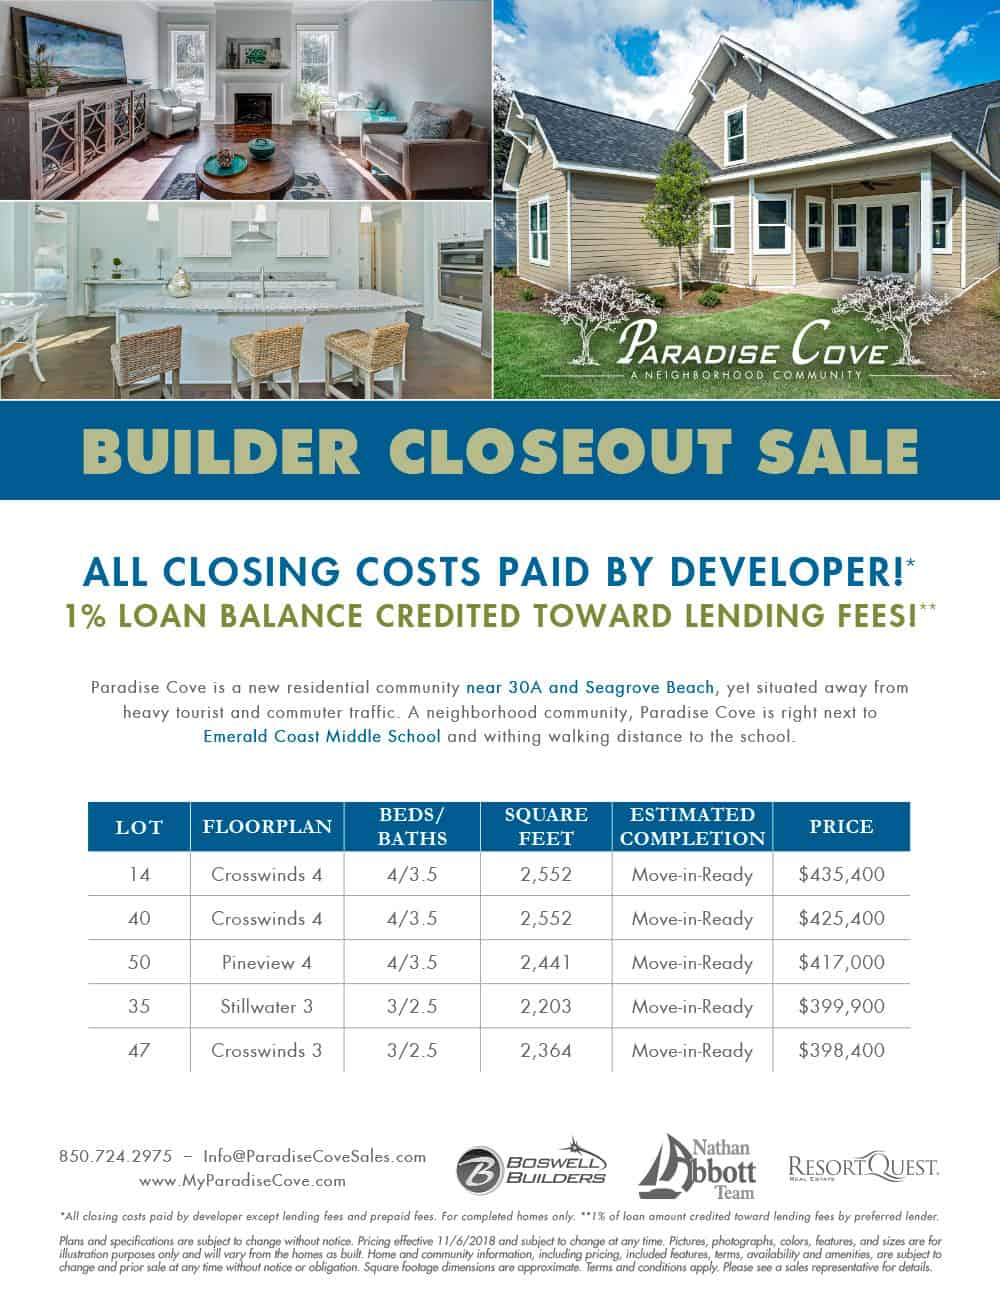 Paradise Cove Builder Closeout sale